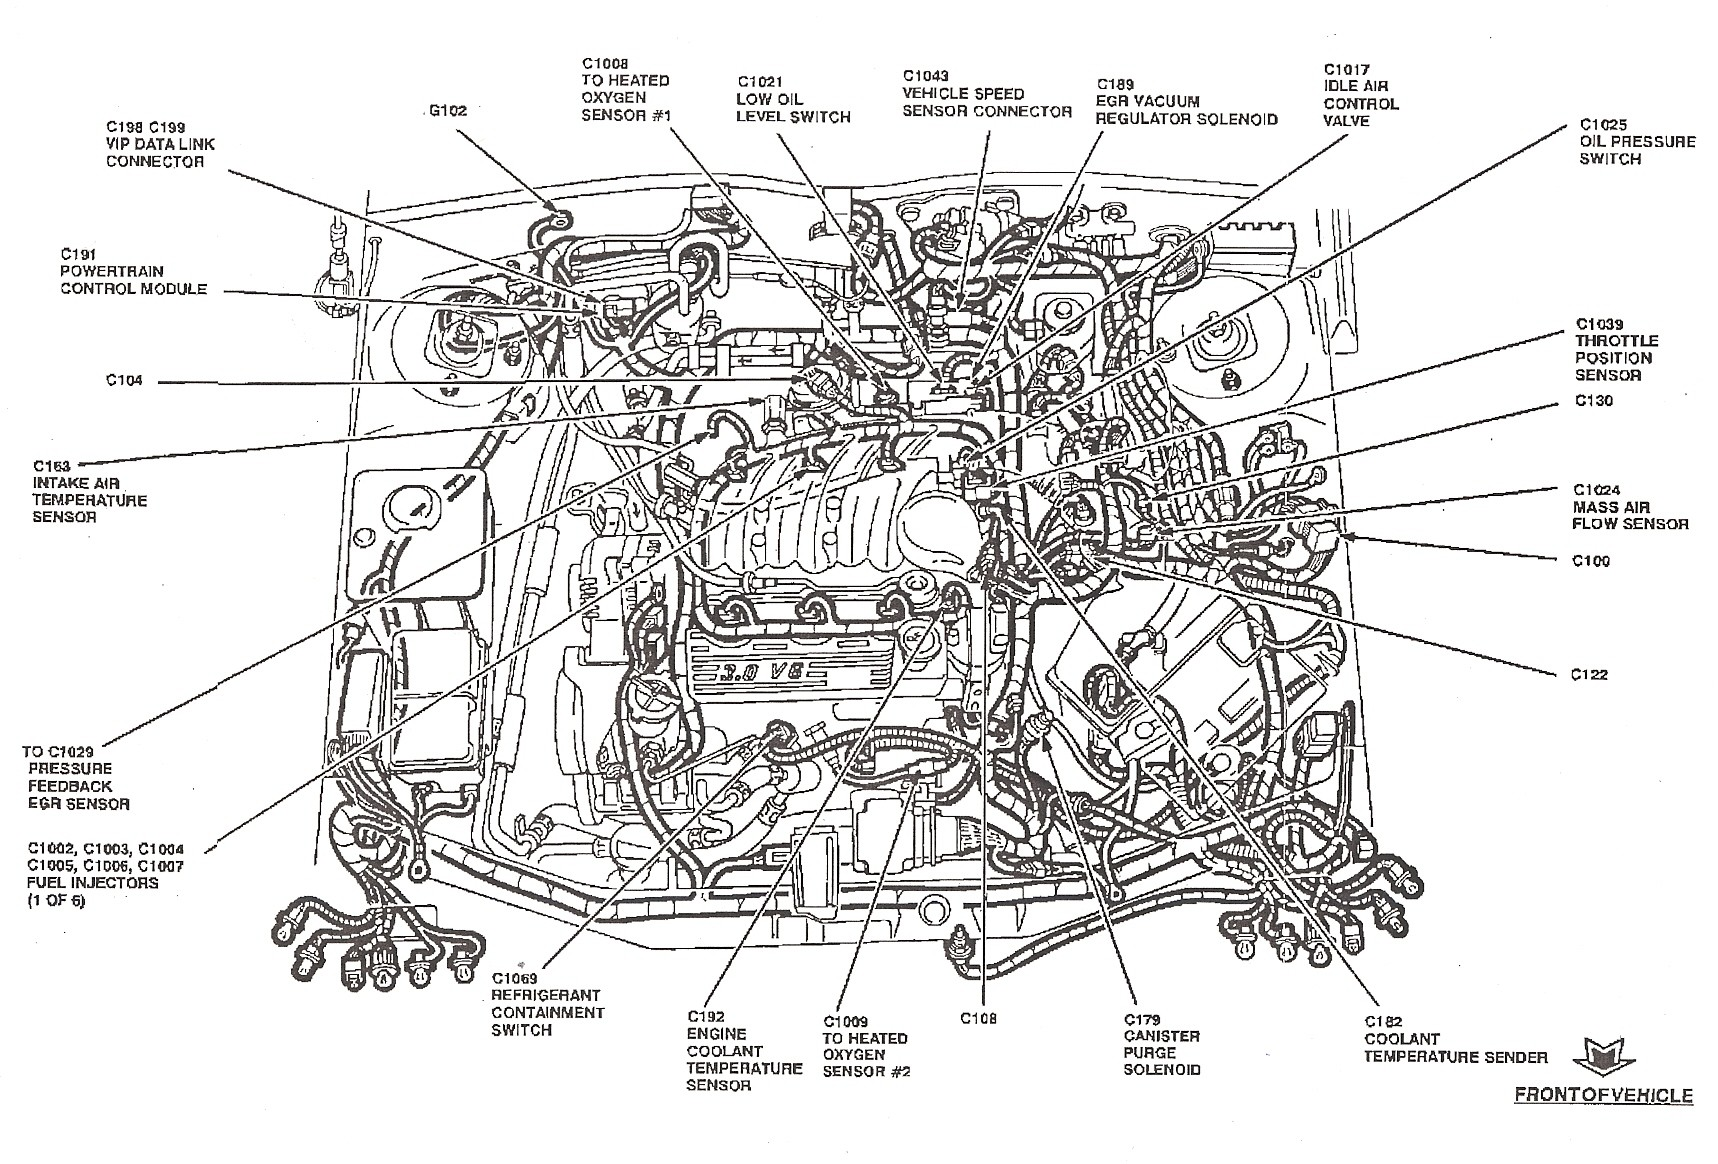 2001 vw jetta 2 0 engine diagram fuse box diagram 1975 vw